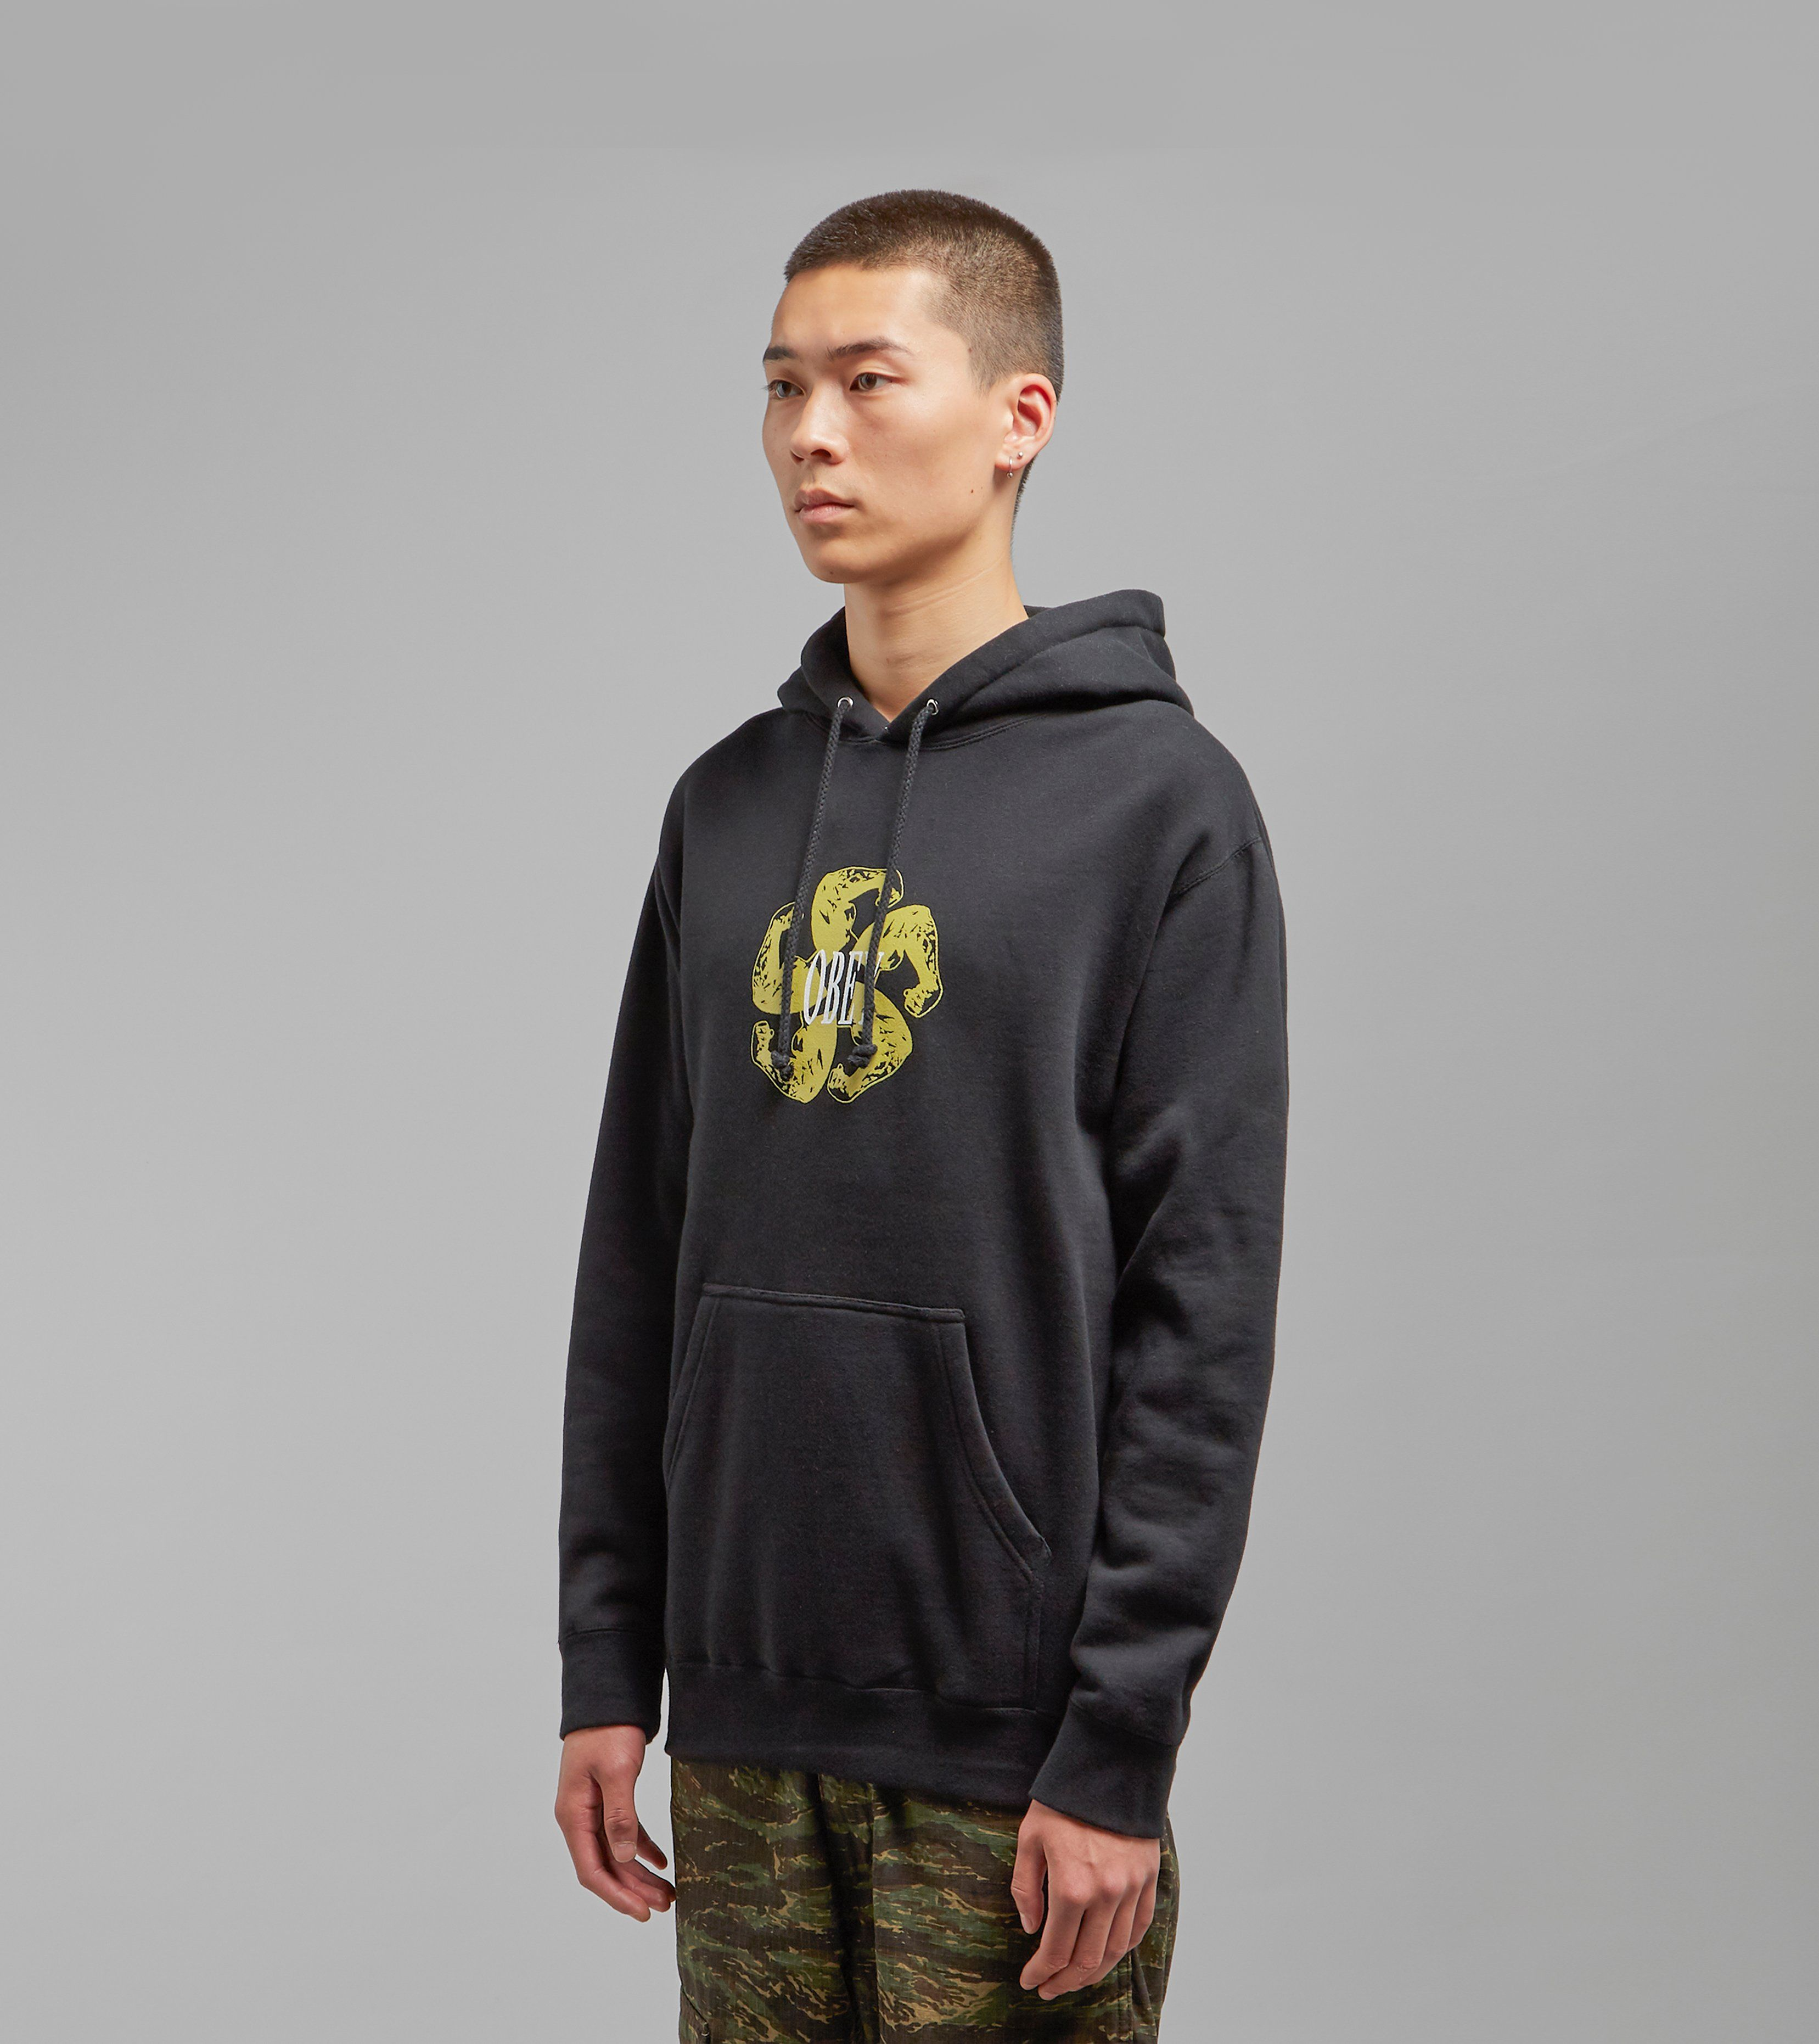 Obey Call To Arms Hoody - size? Exclusive